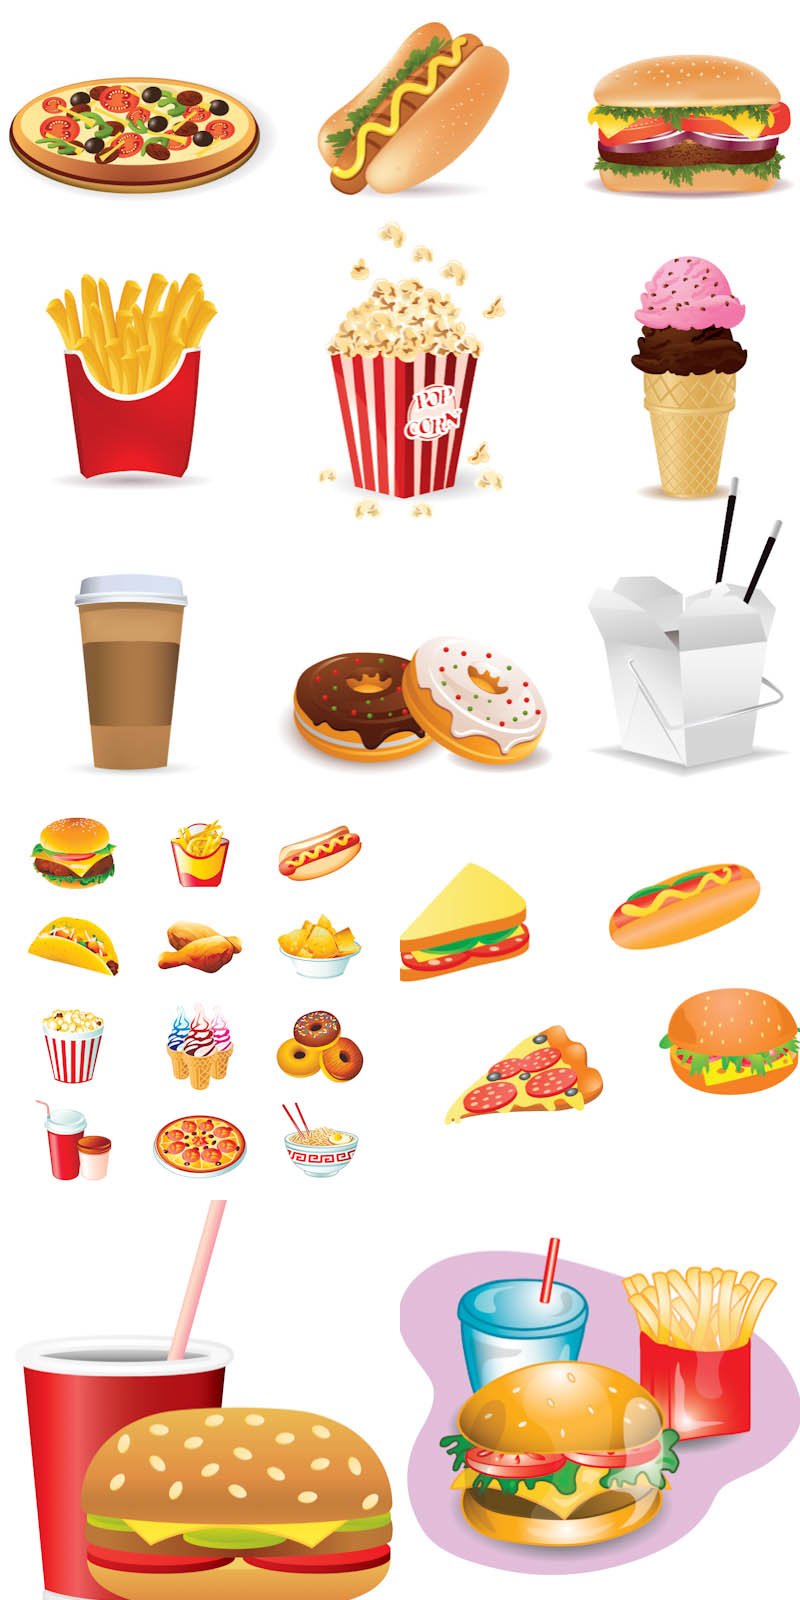 Food vector clipart free download picture library stock Food vector clipart free download - ClipartFest picture library stock